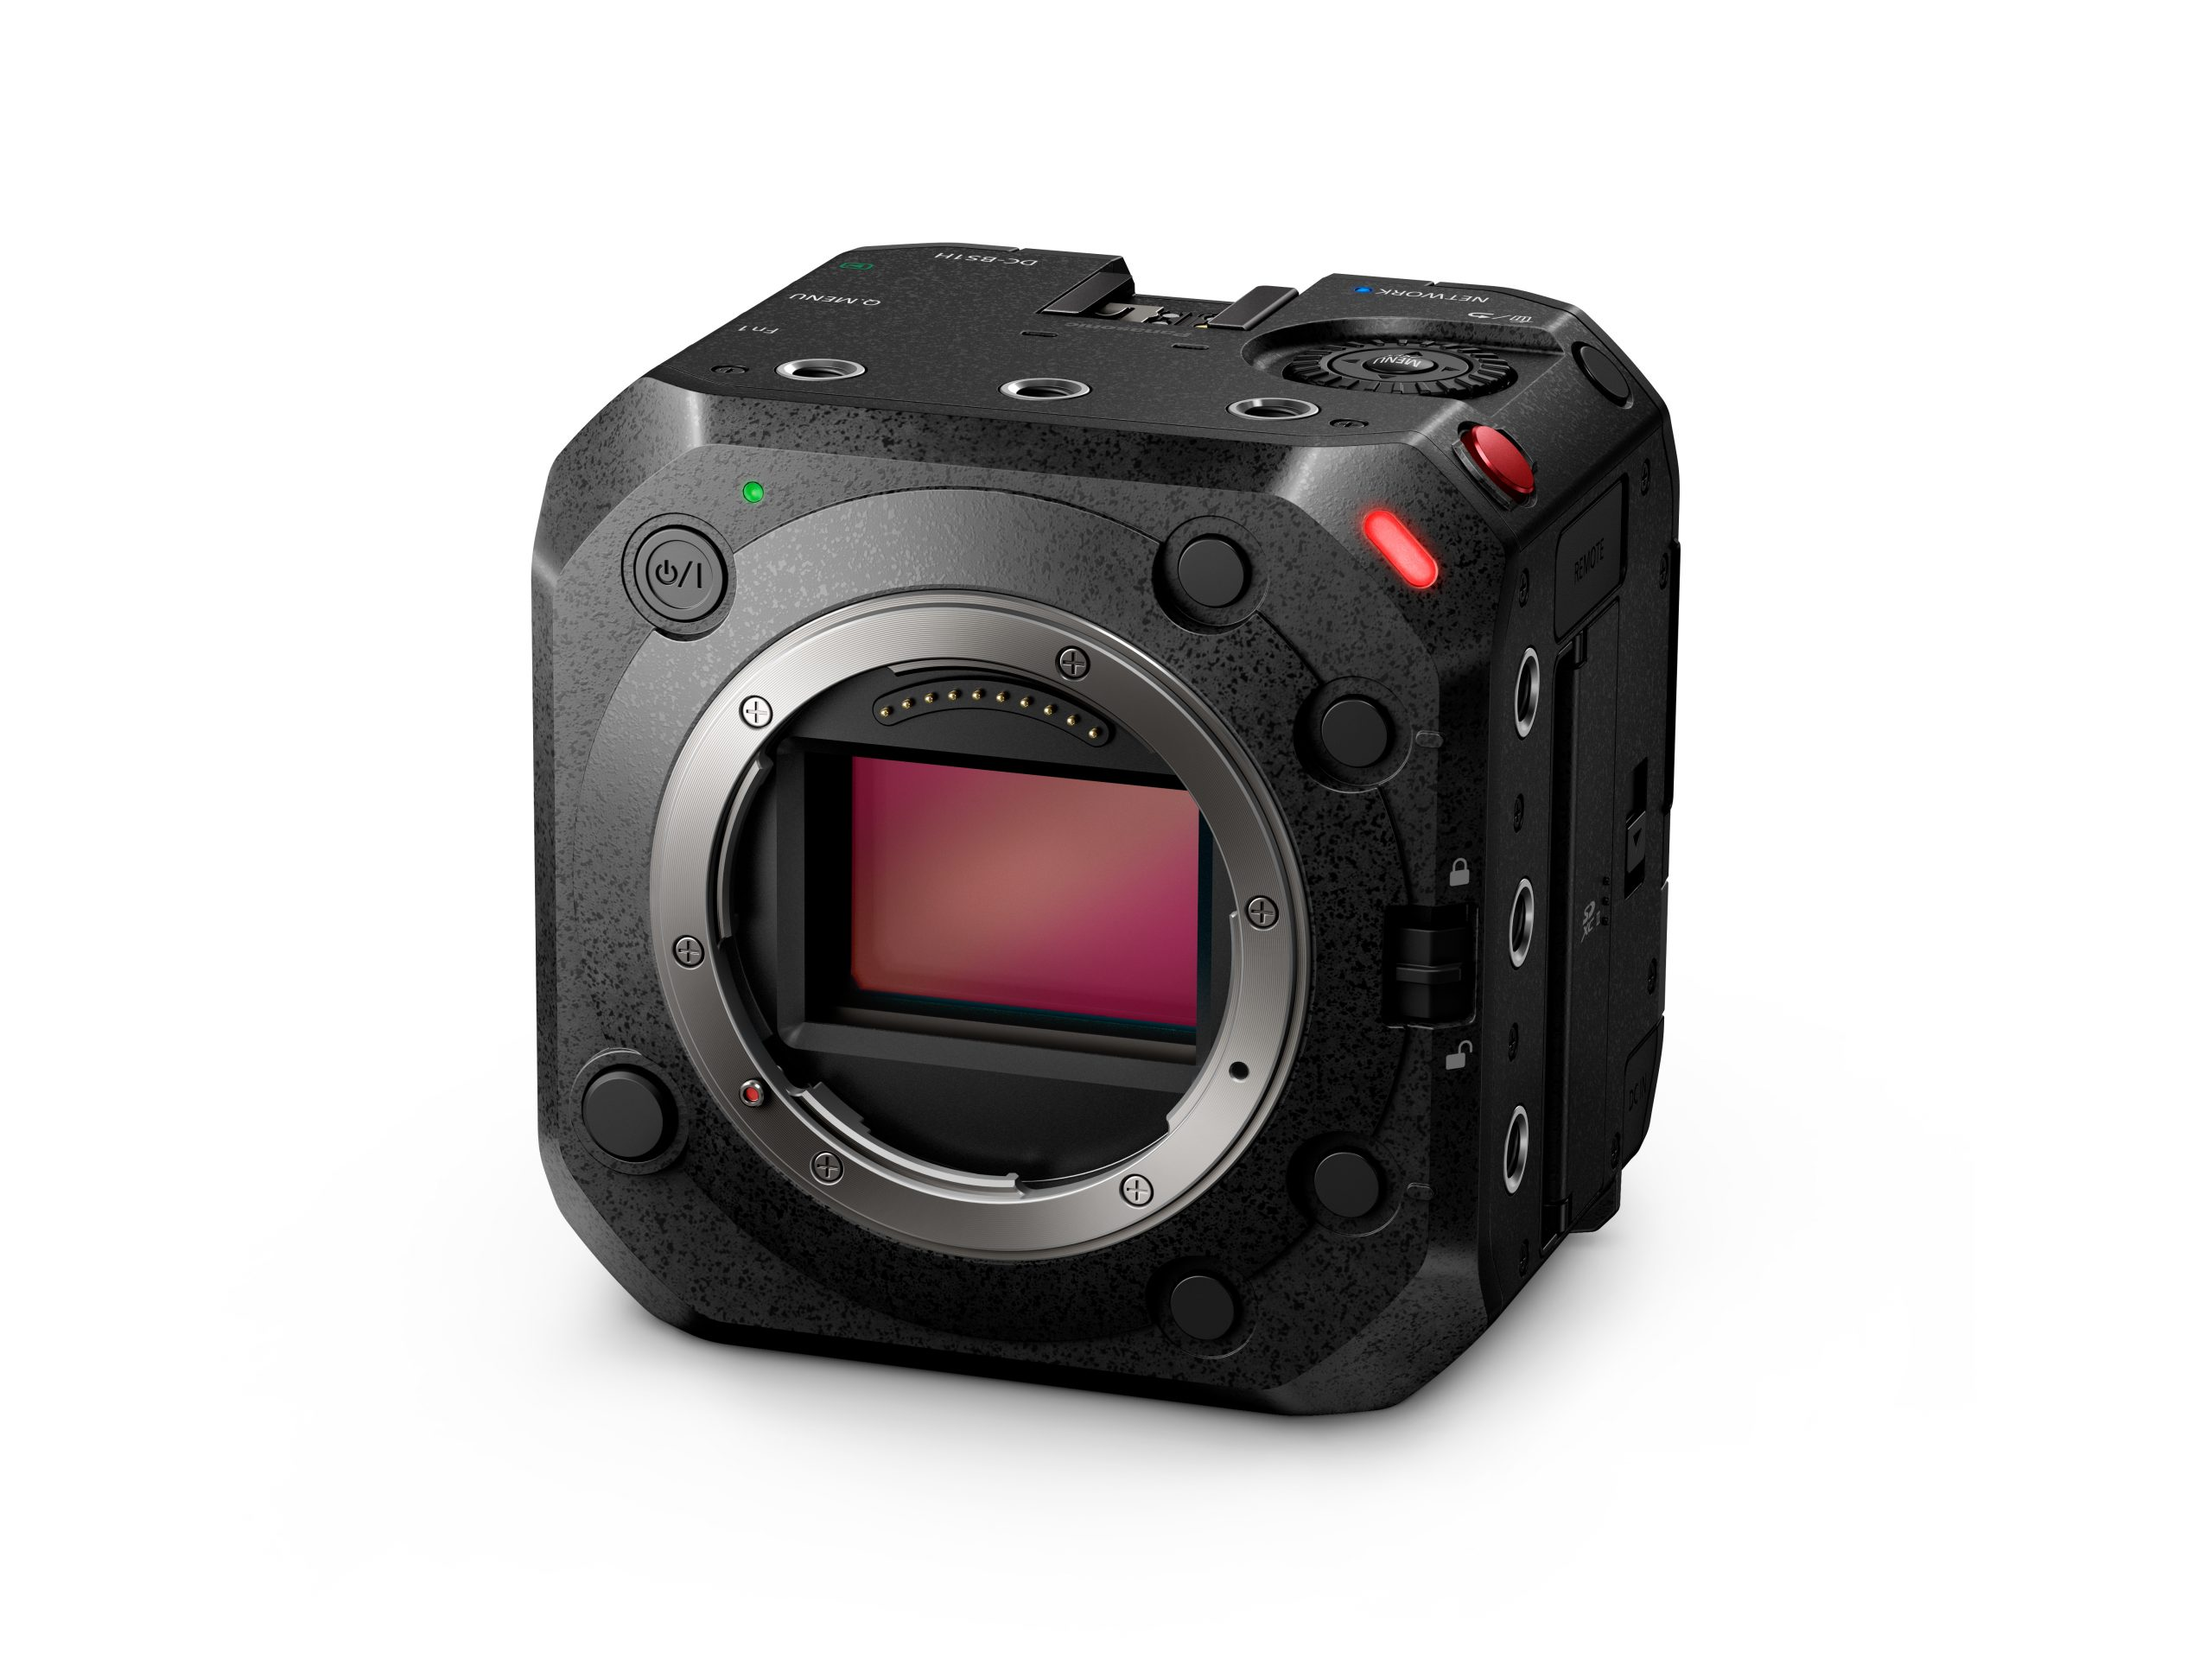 A front view of the Panasonic LUMIX BS1H camera without lens